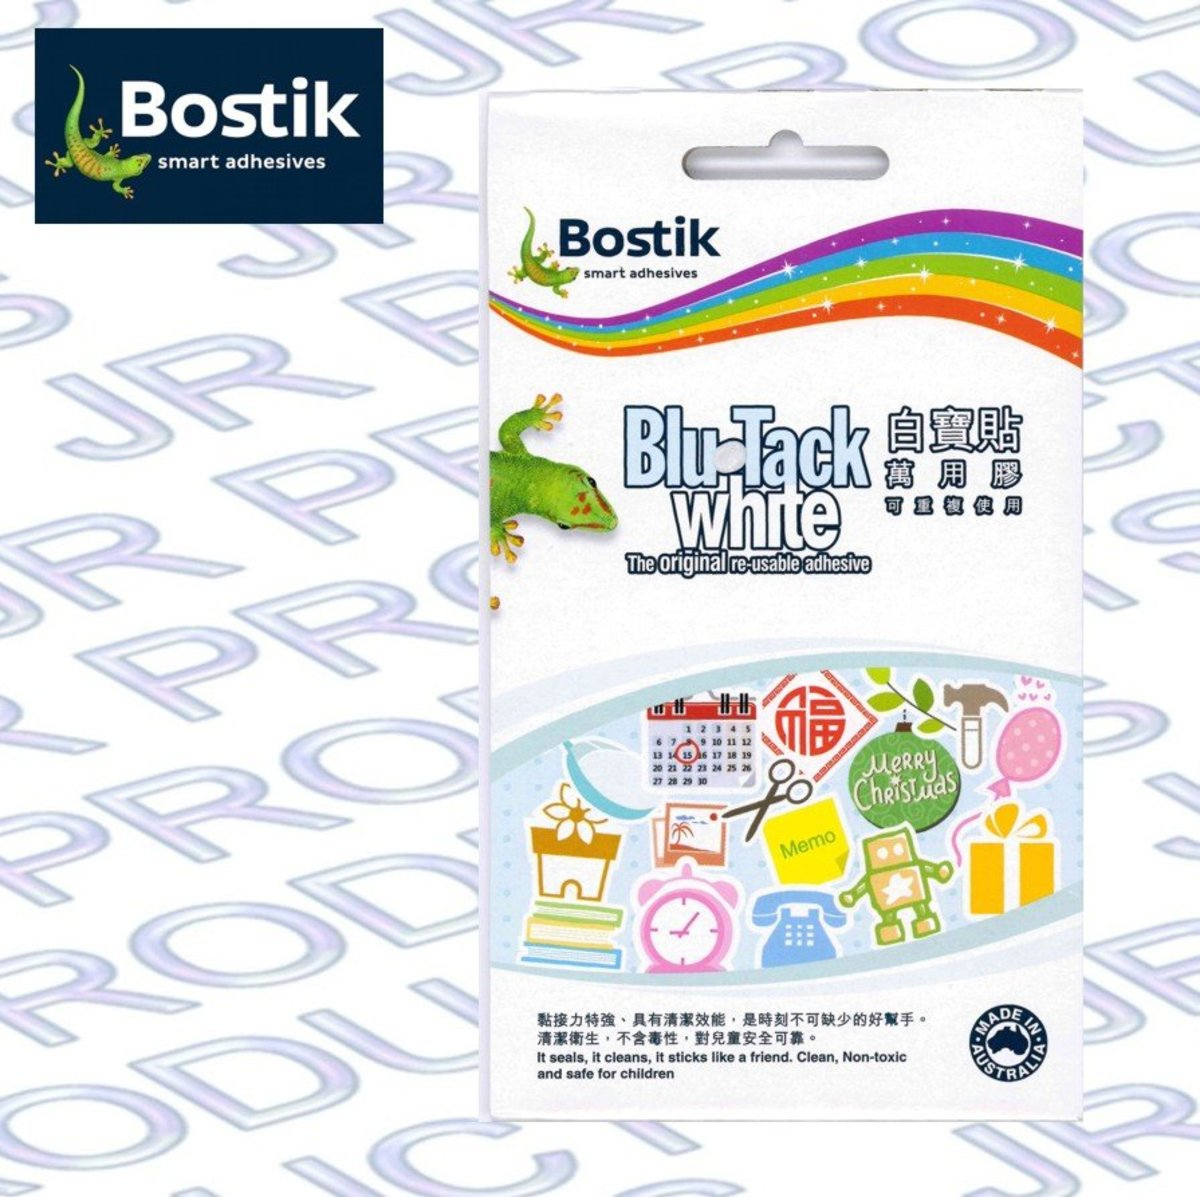 Blu Tack® WHITE re-usable adhesive (75g)《HK Authorized》